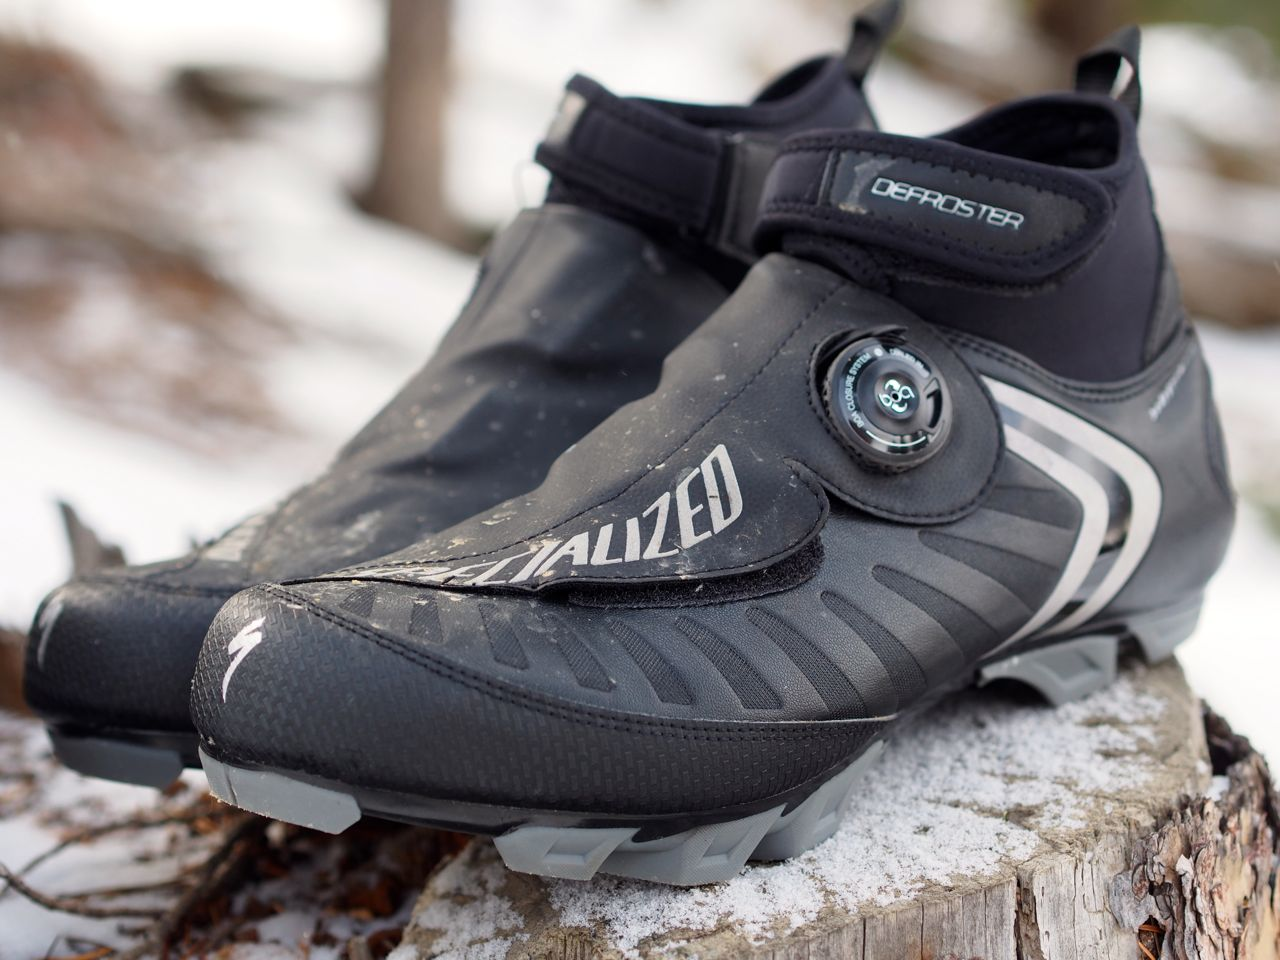 Review Specialized Defroster Winter Mountain Bike Shoe